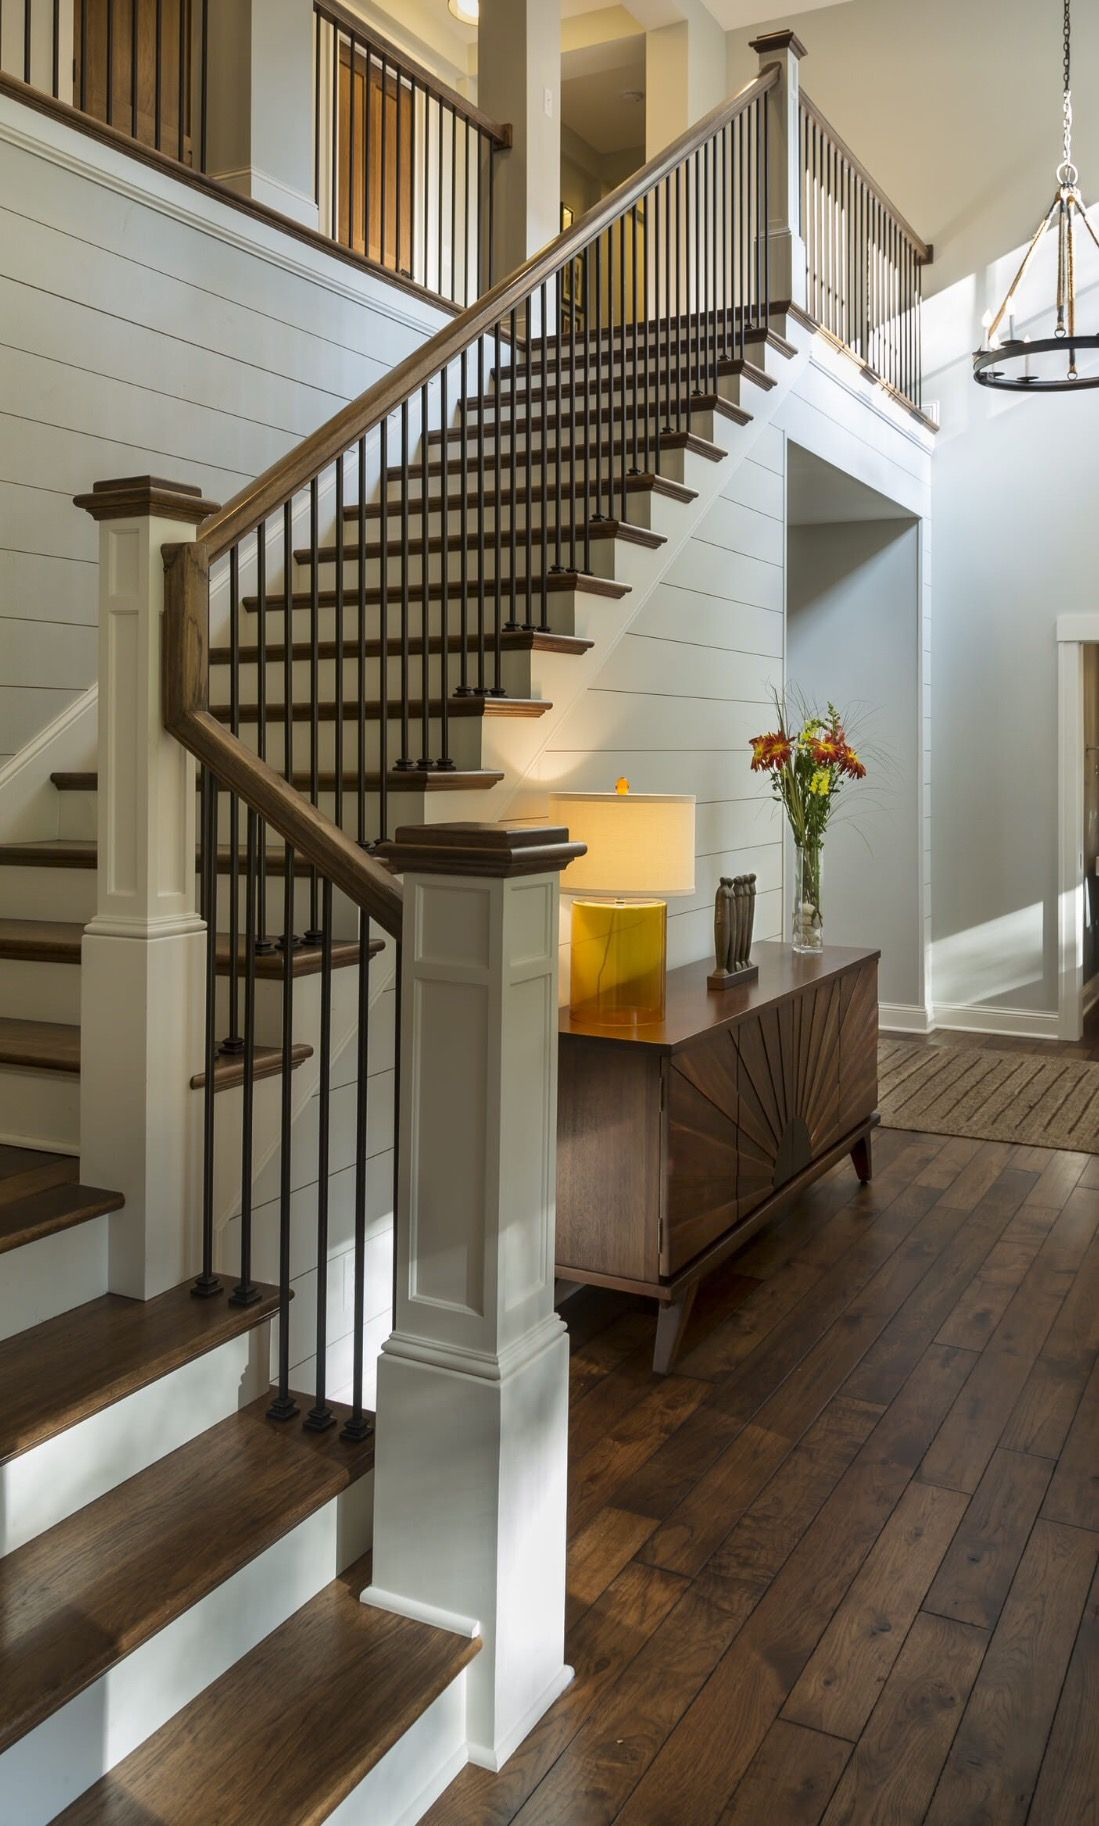 home interior design stairs%0A Explore Stairs  Volute  and more